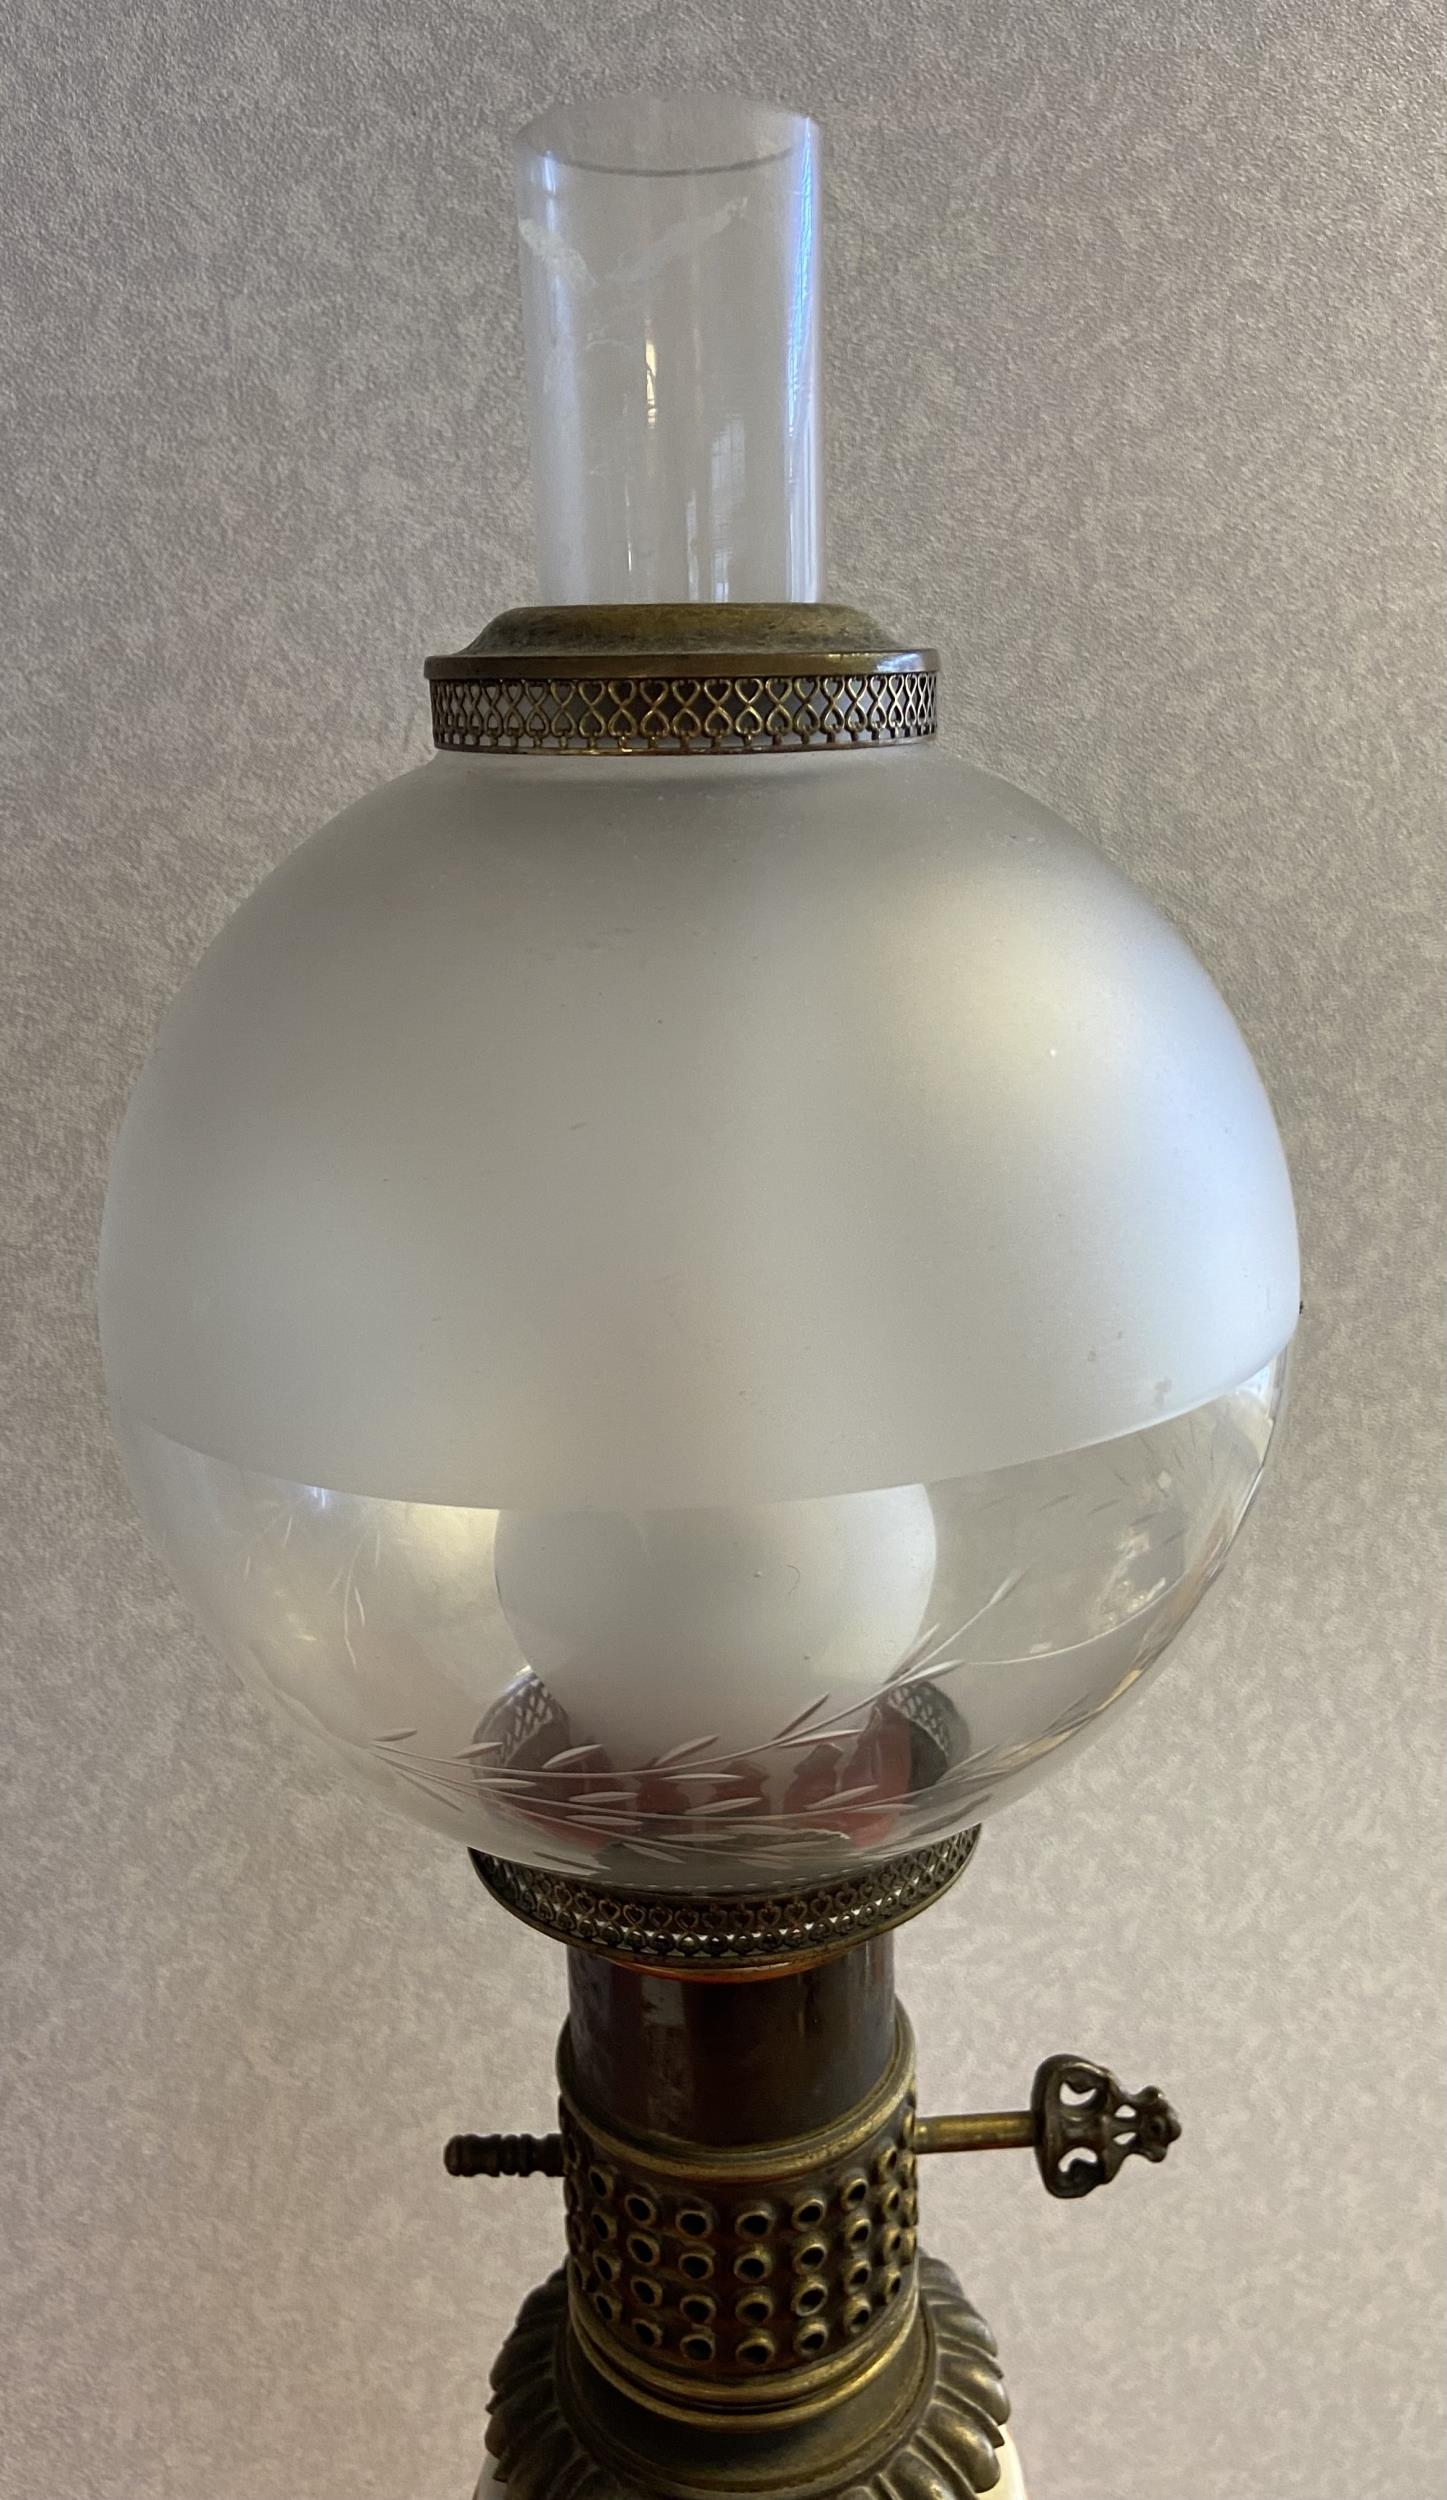 An Antique porcelain, metal and glass shade paraffin lamp converted to electric. [72cm in height] - Image 2 of 3